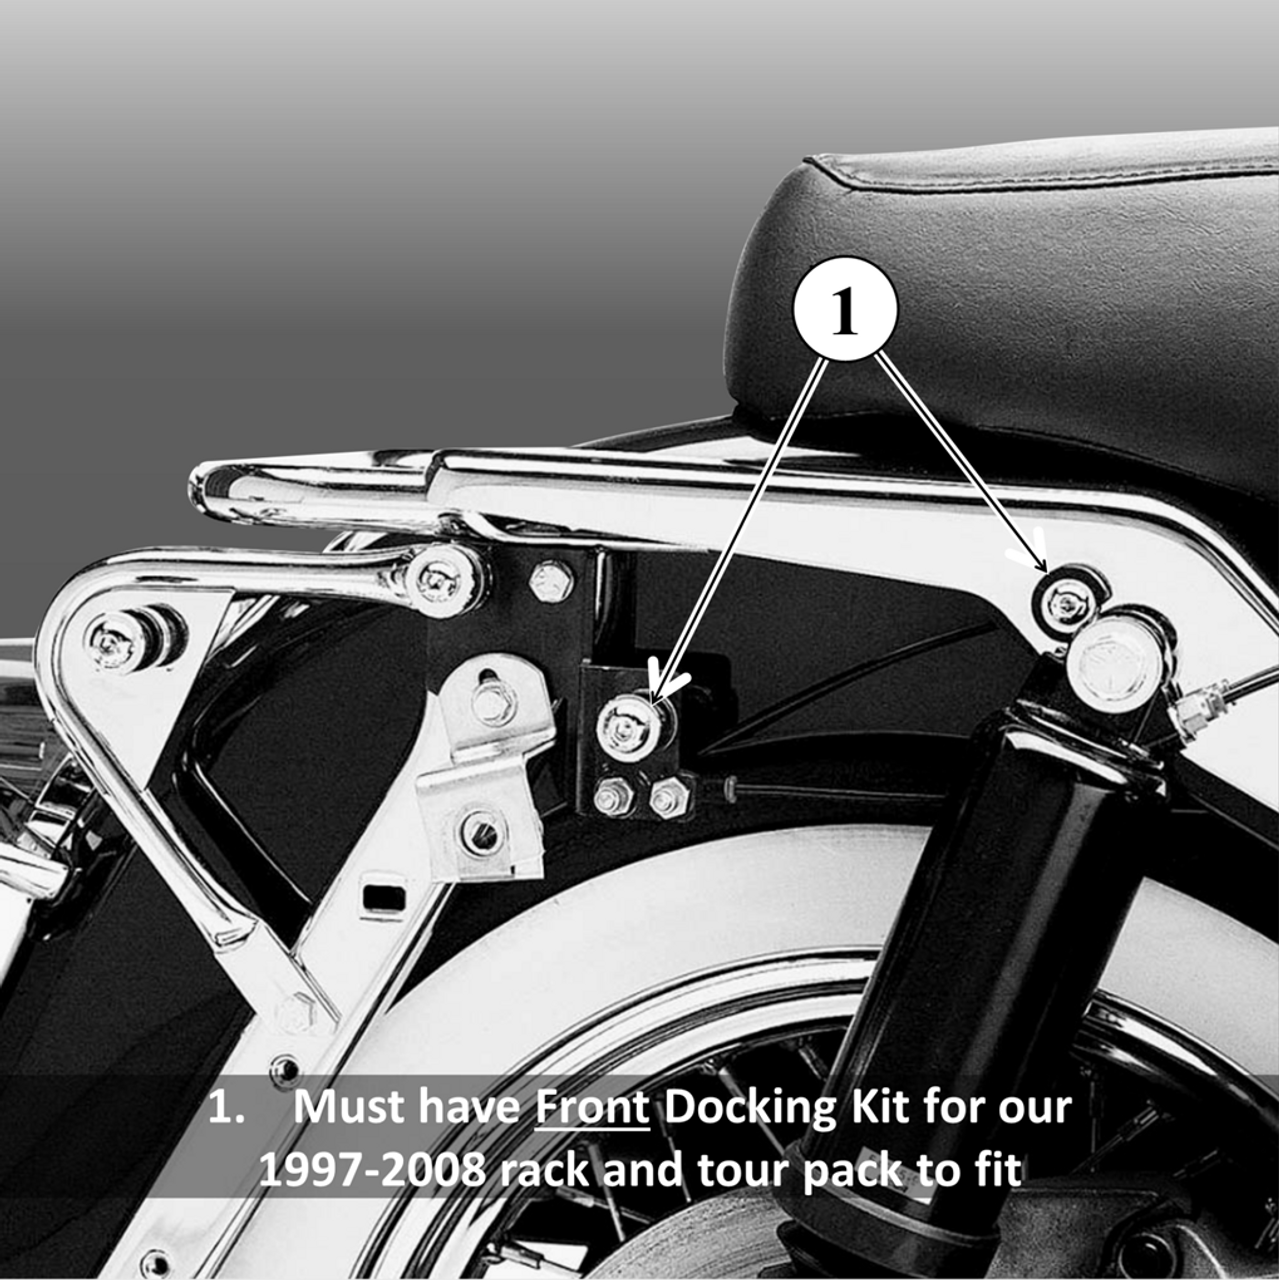 Fits FRONT/FORWARD 4-point docking kit on Harley touring bikes; the 1997-2008 rack will not work without this kit